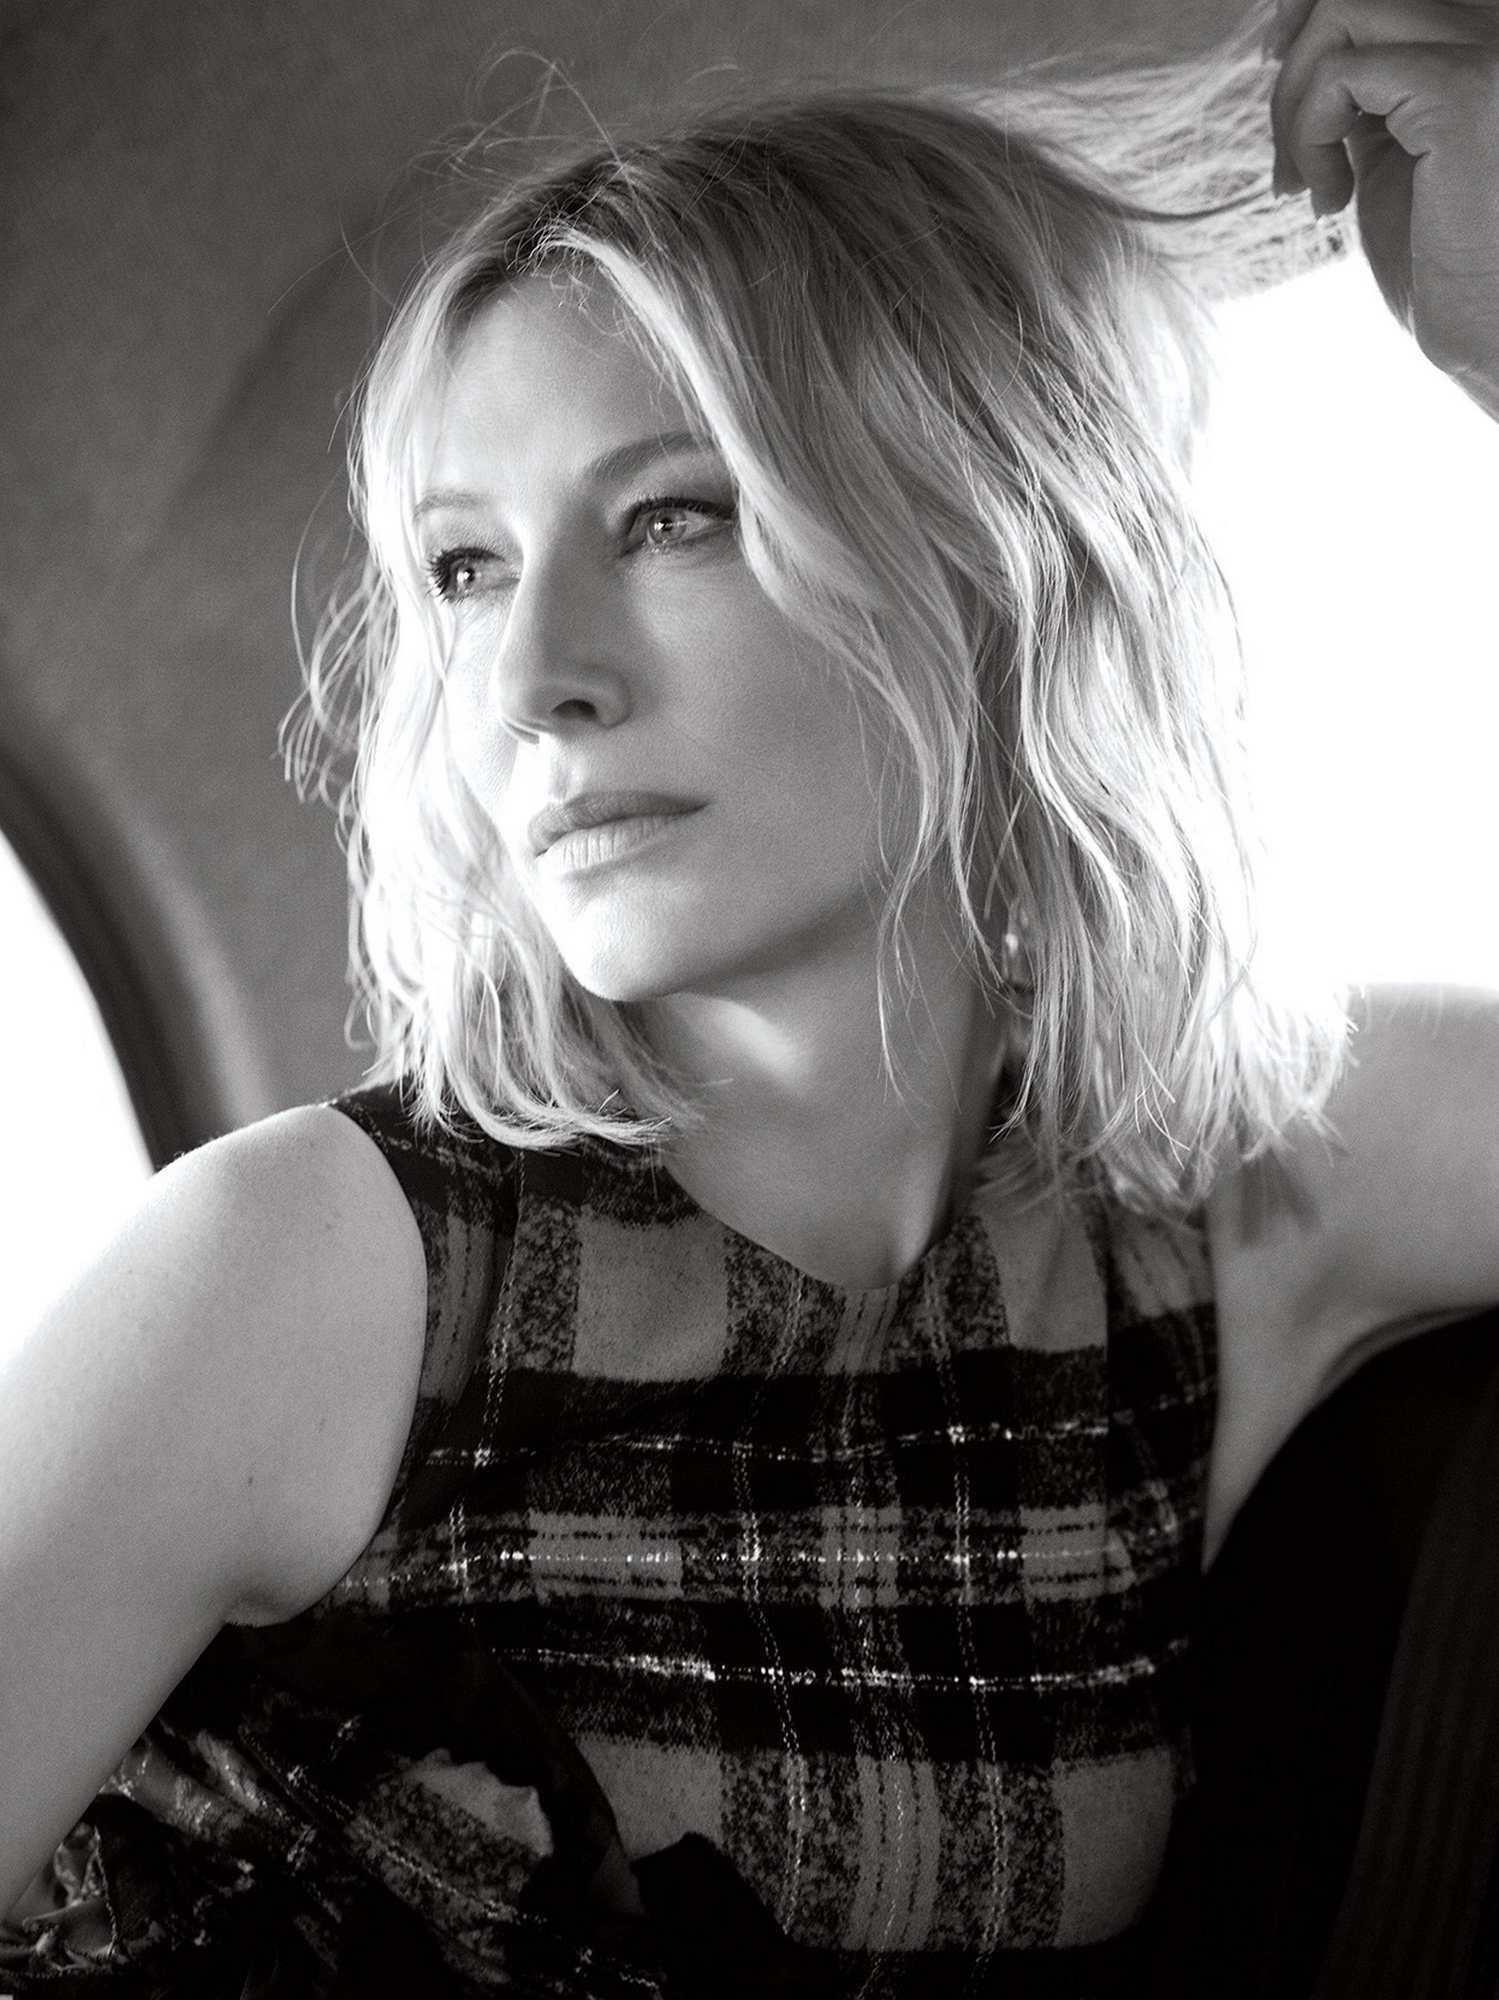 Cate-Blanchett-All-Female-Issue-of-W-Magazine-September7037cb965972774.jpg